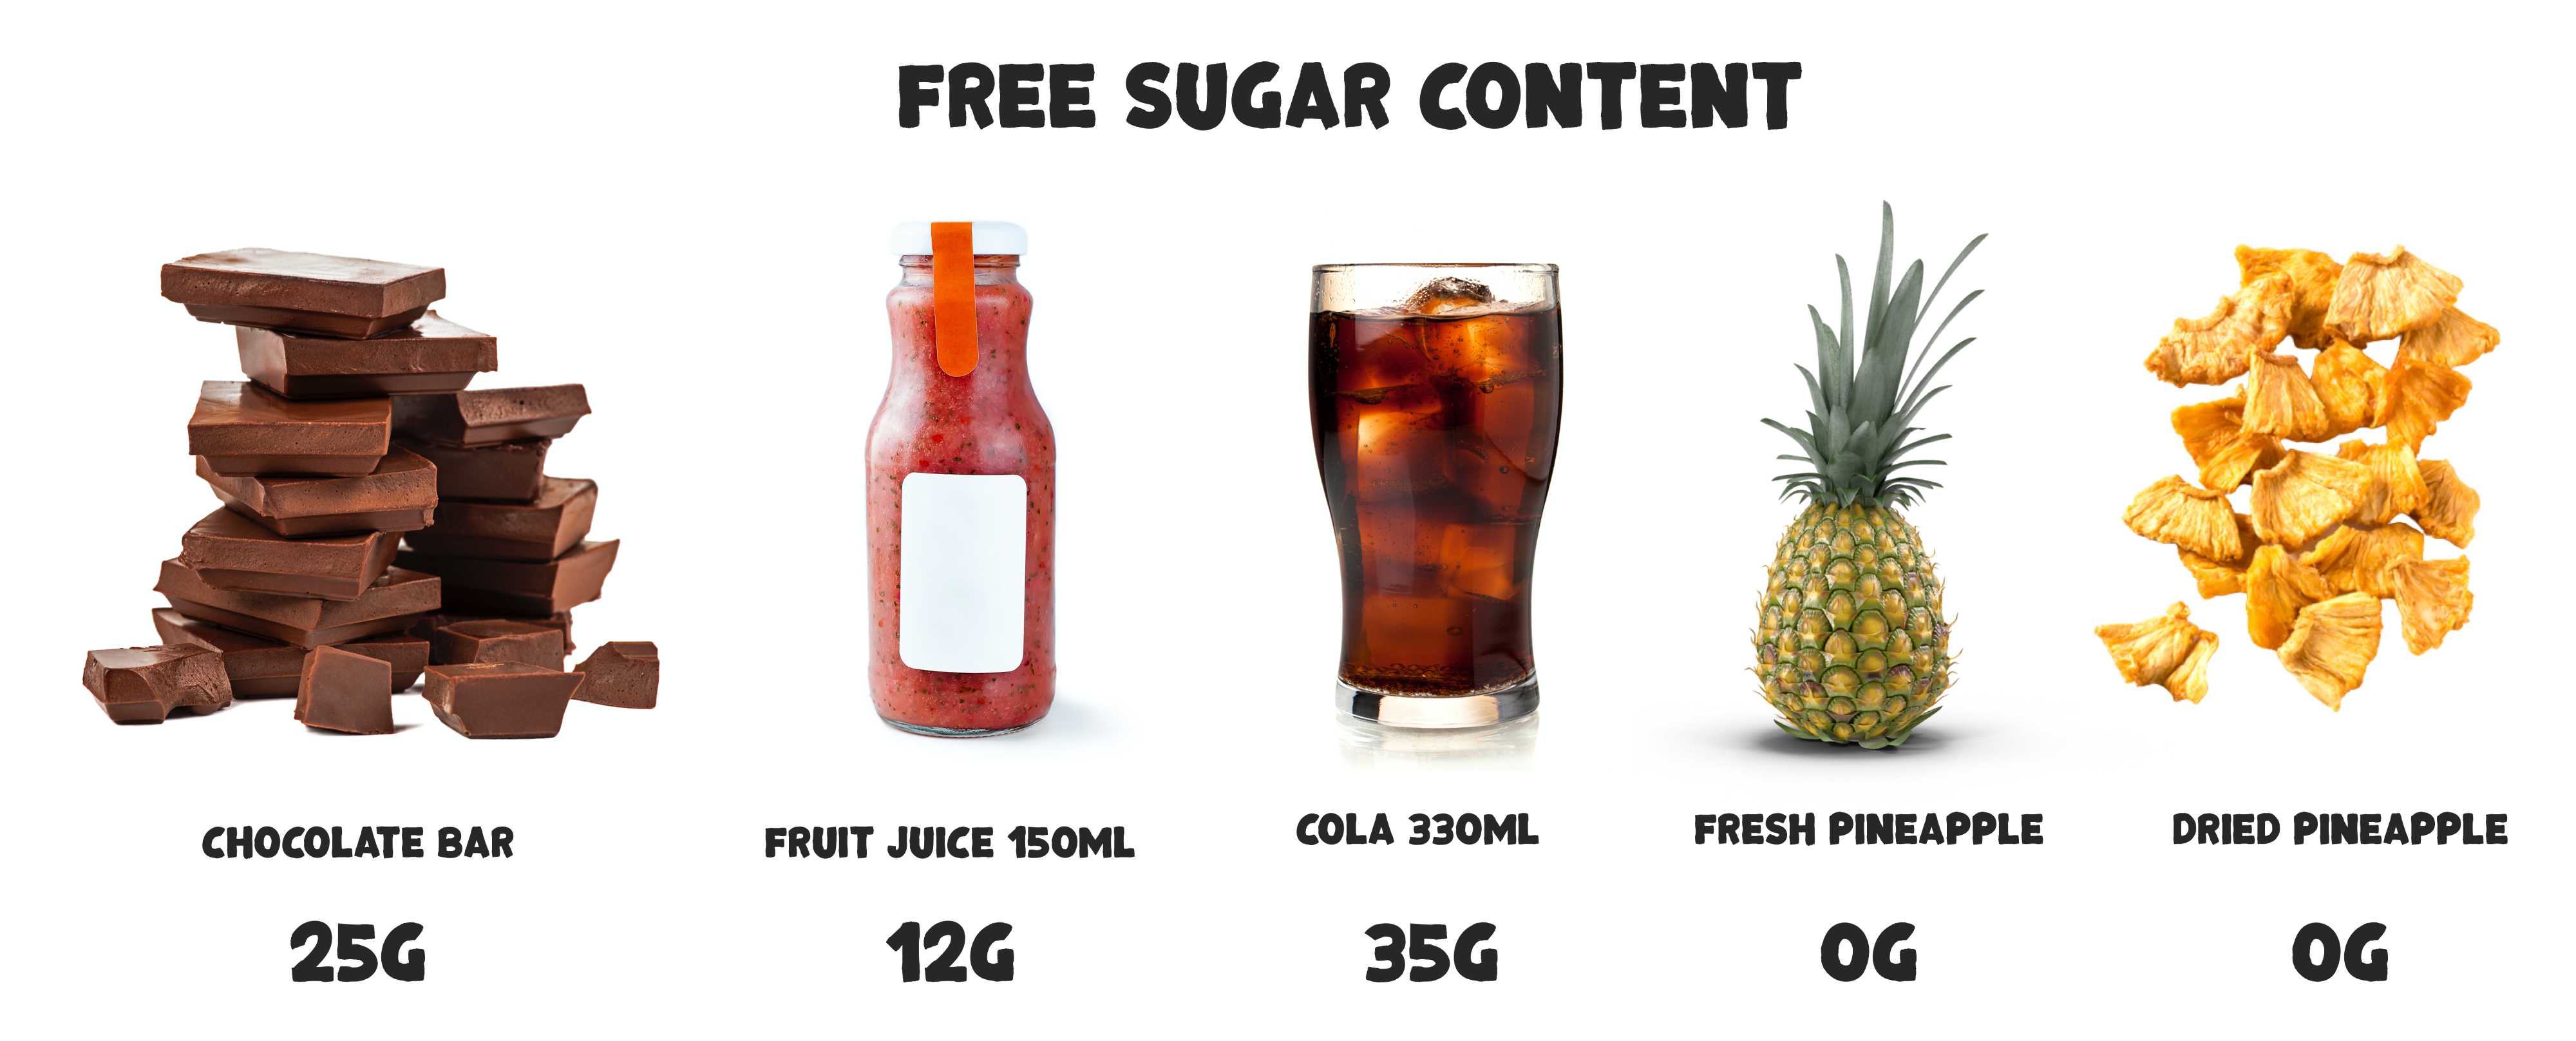 Free sugar content for dried fruit, fresh fruit, cola, fruit juice and chocolate bar